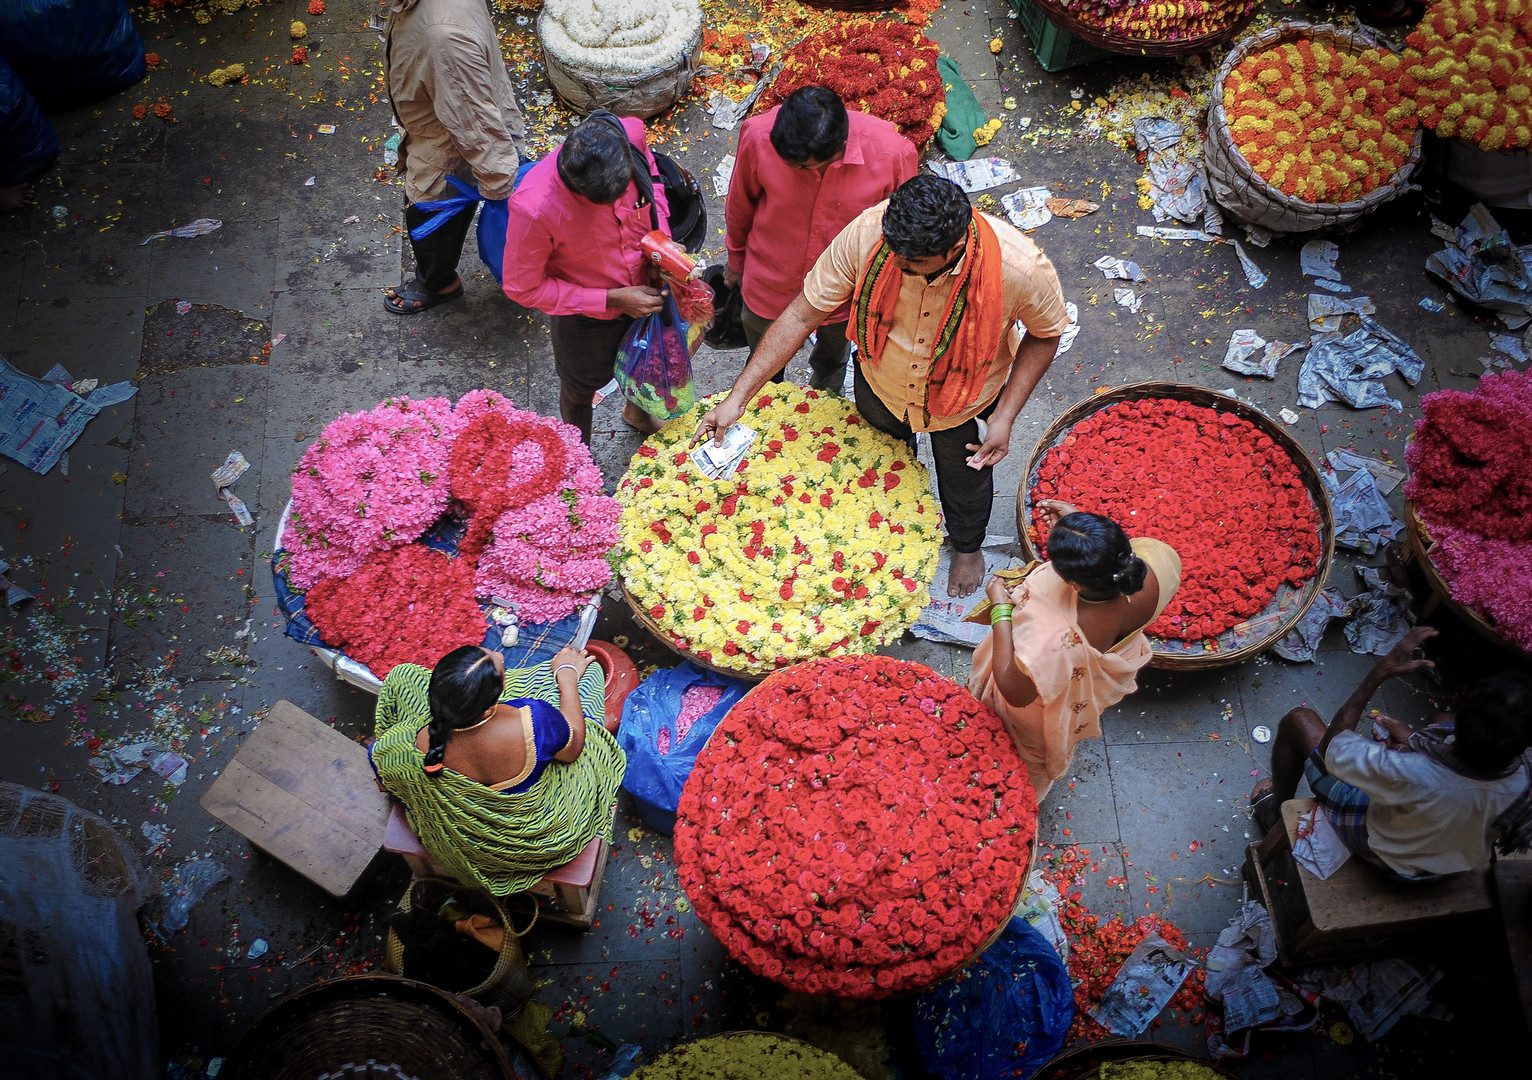 """Photo Series: """"Markets"""". Image Number: """"5-Markets"""""""